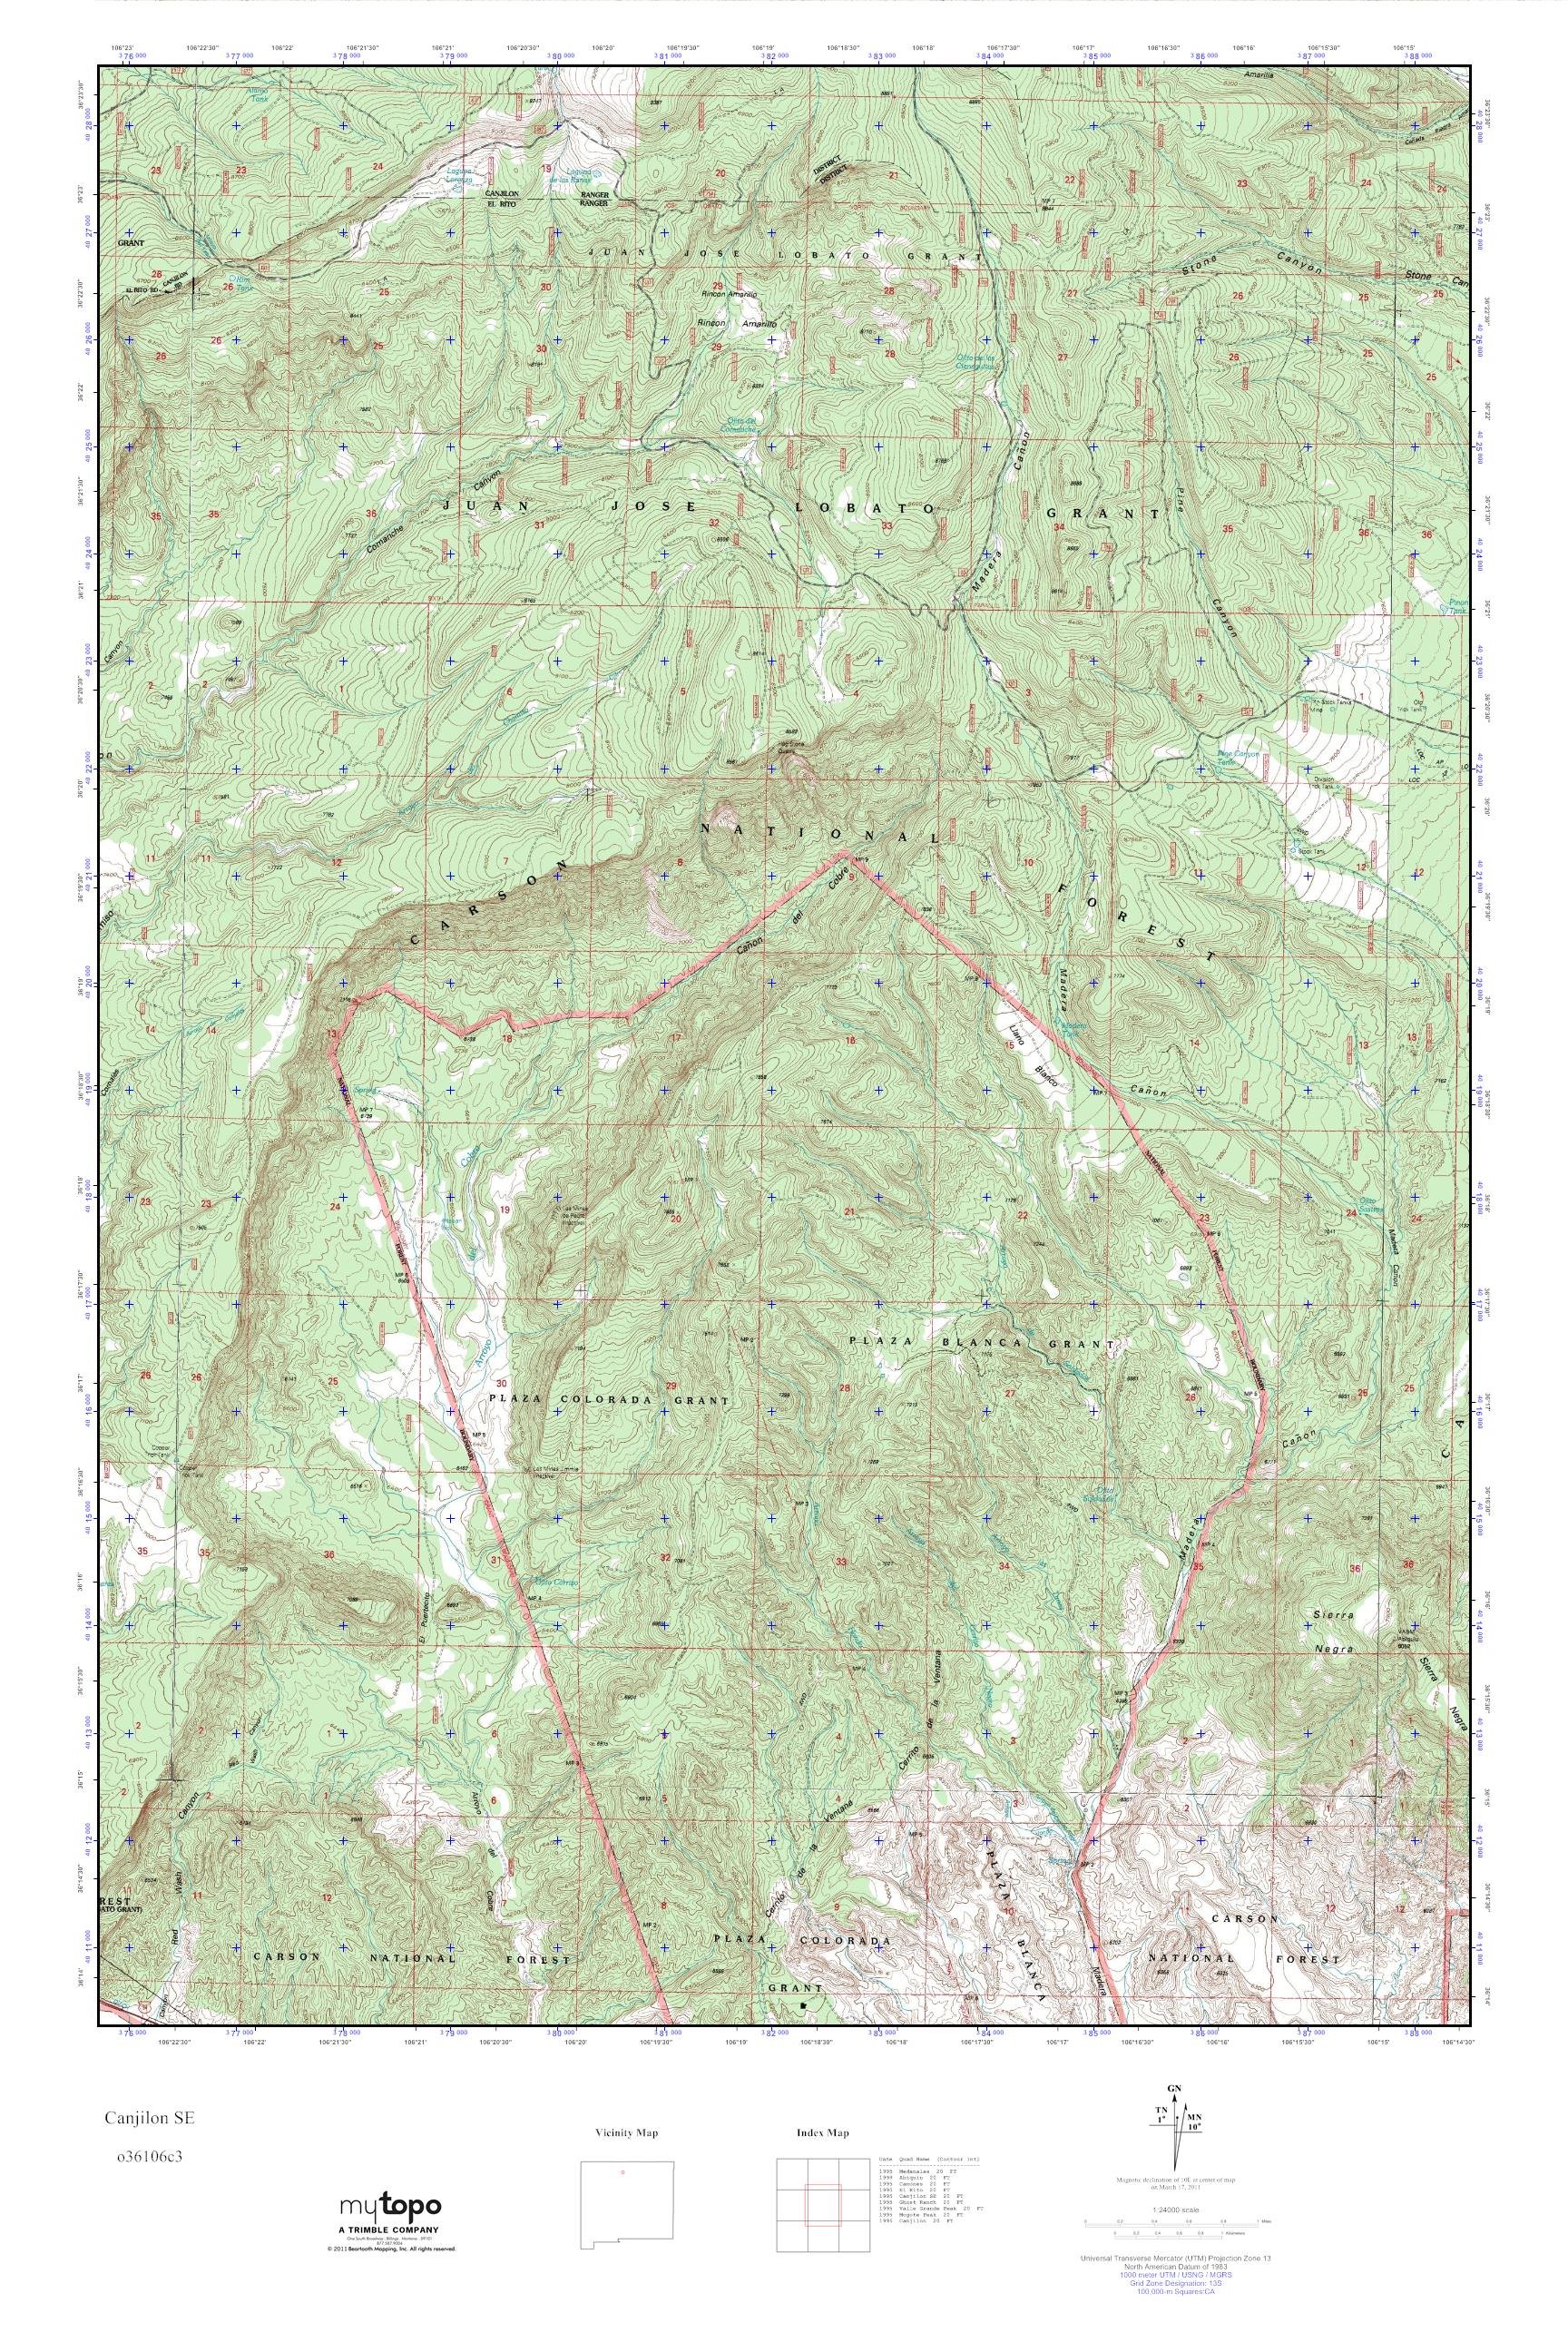 MyTopo Canjilon SE New Mexico USGS Quad Topo Map